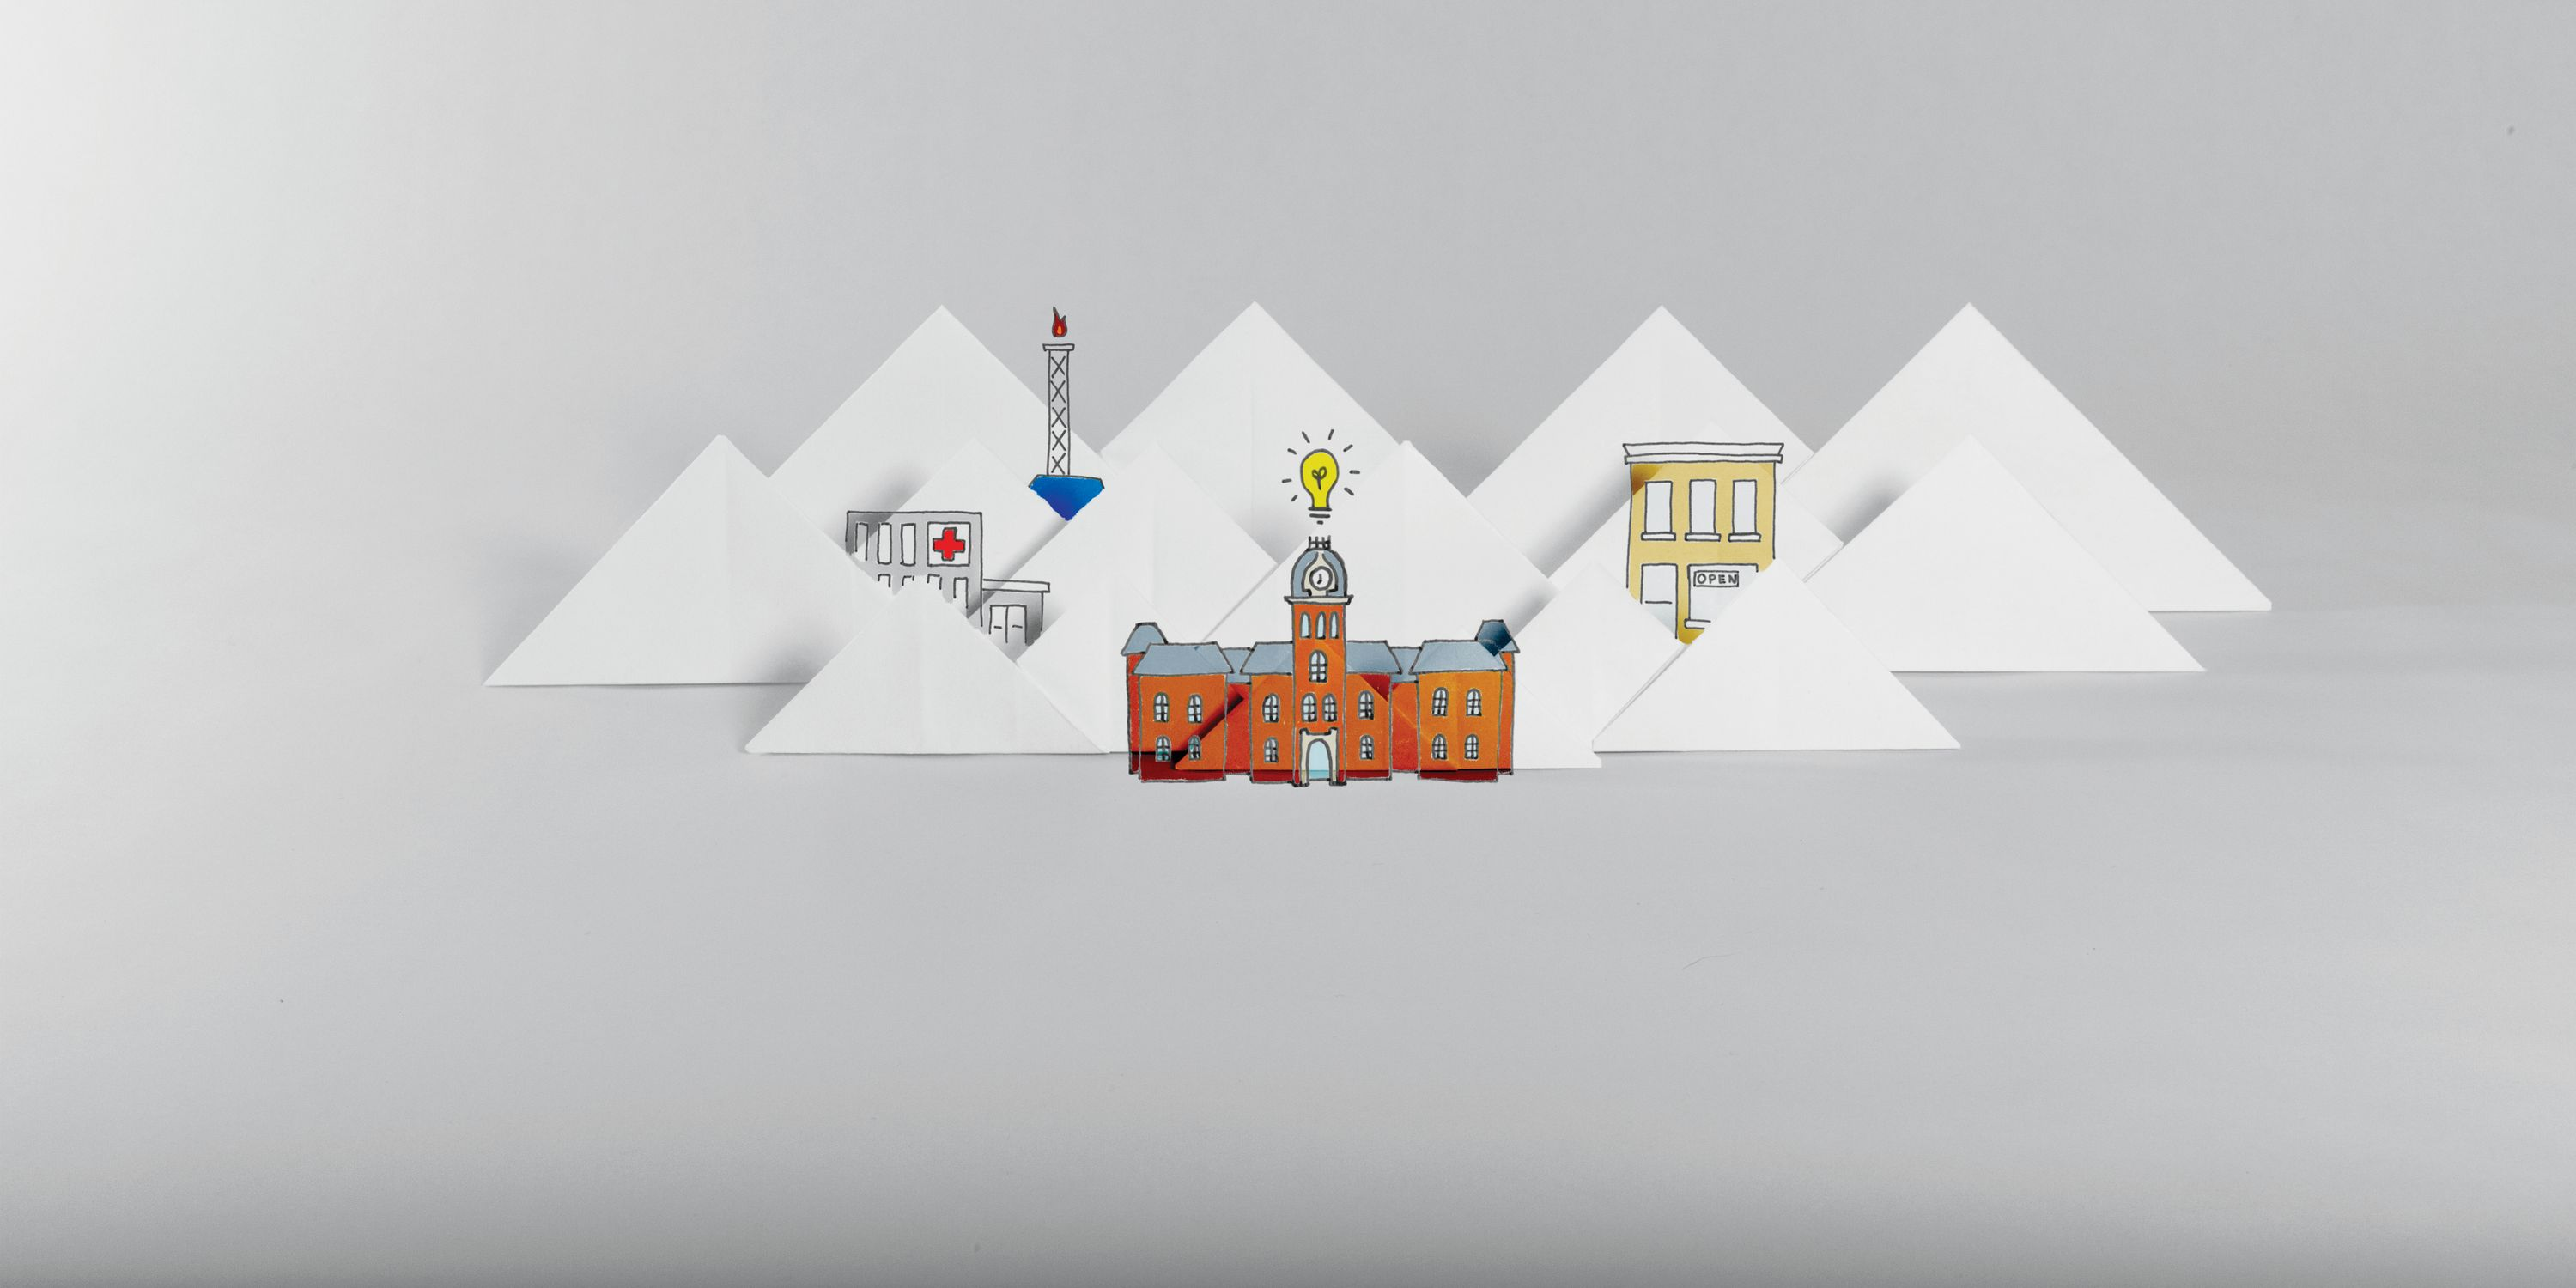 Origami depiction of Woodburn Hall, a gas well and a downtown among mountains